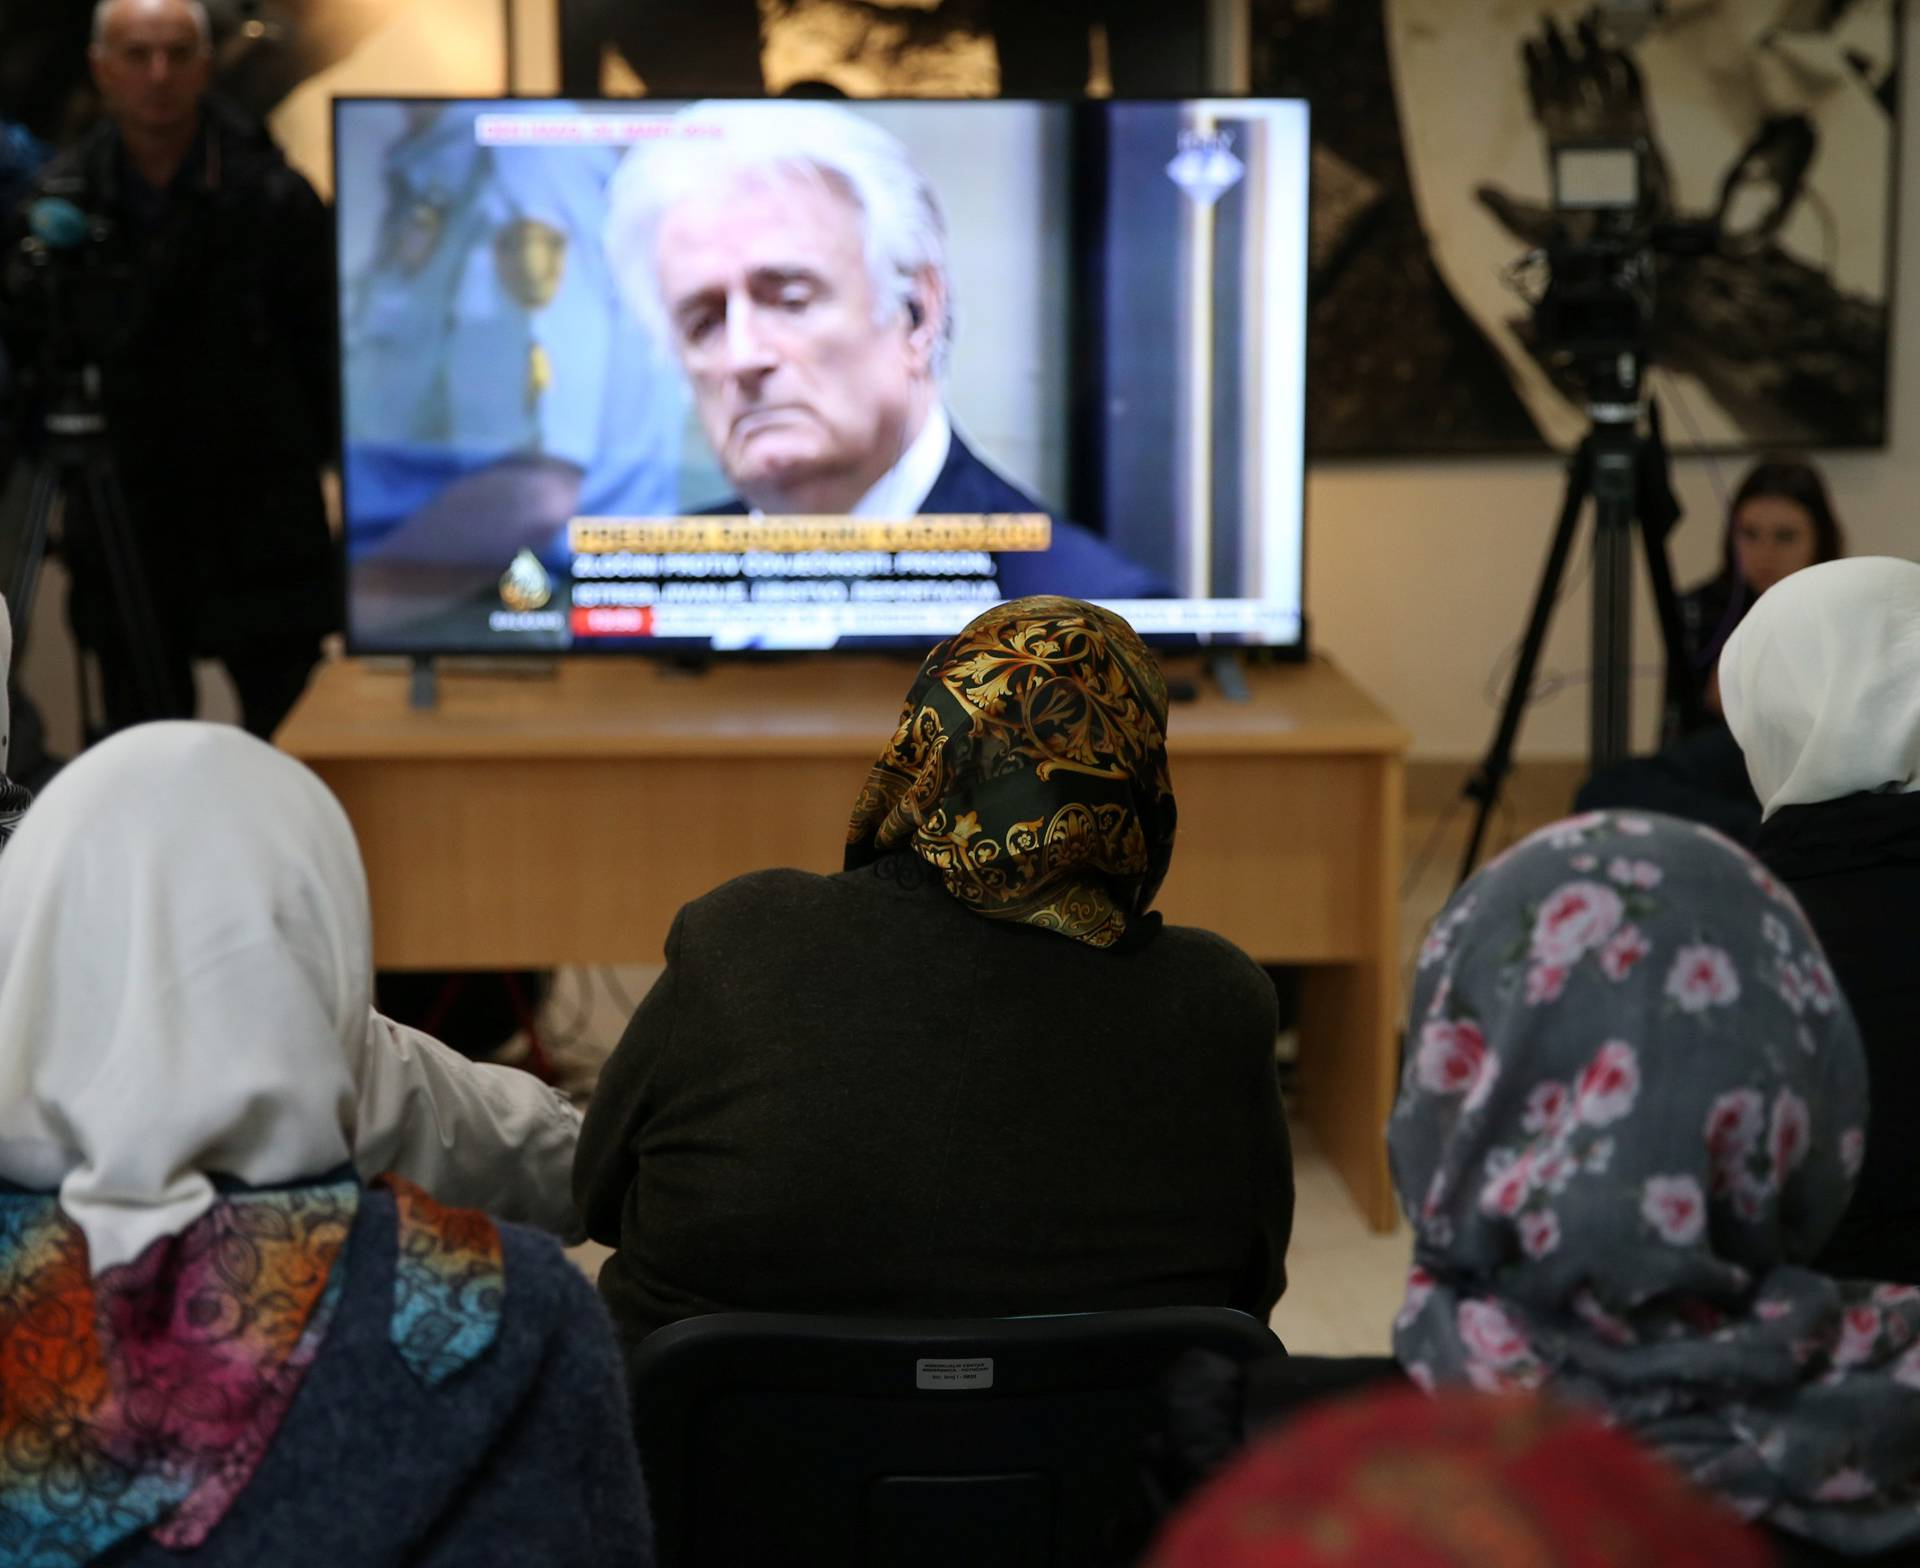 People wait for the judges verdict on former Bosnian Serb political leader Radovan Karadzic's appeal of his 40 year sentence for war crimes, in the Memorial centre Potocari near Srebrenica